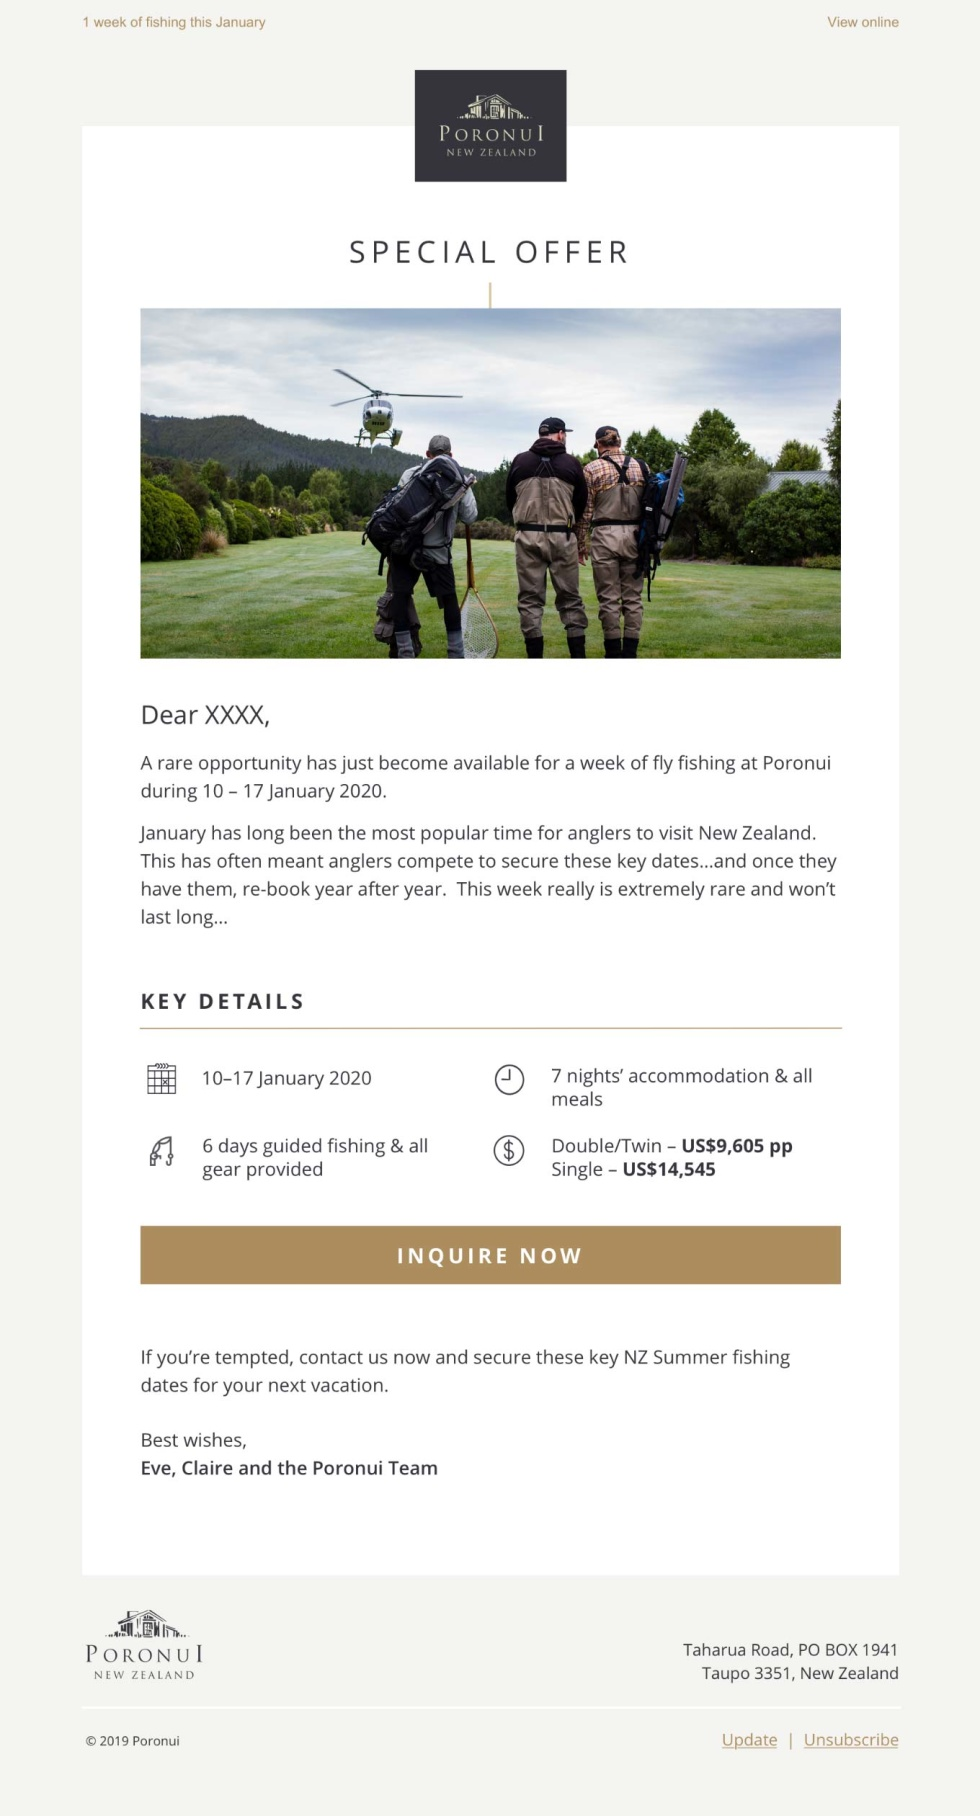 An email template design for Poronui